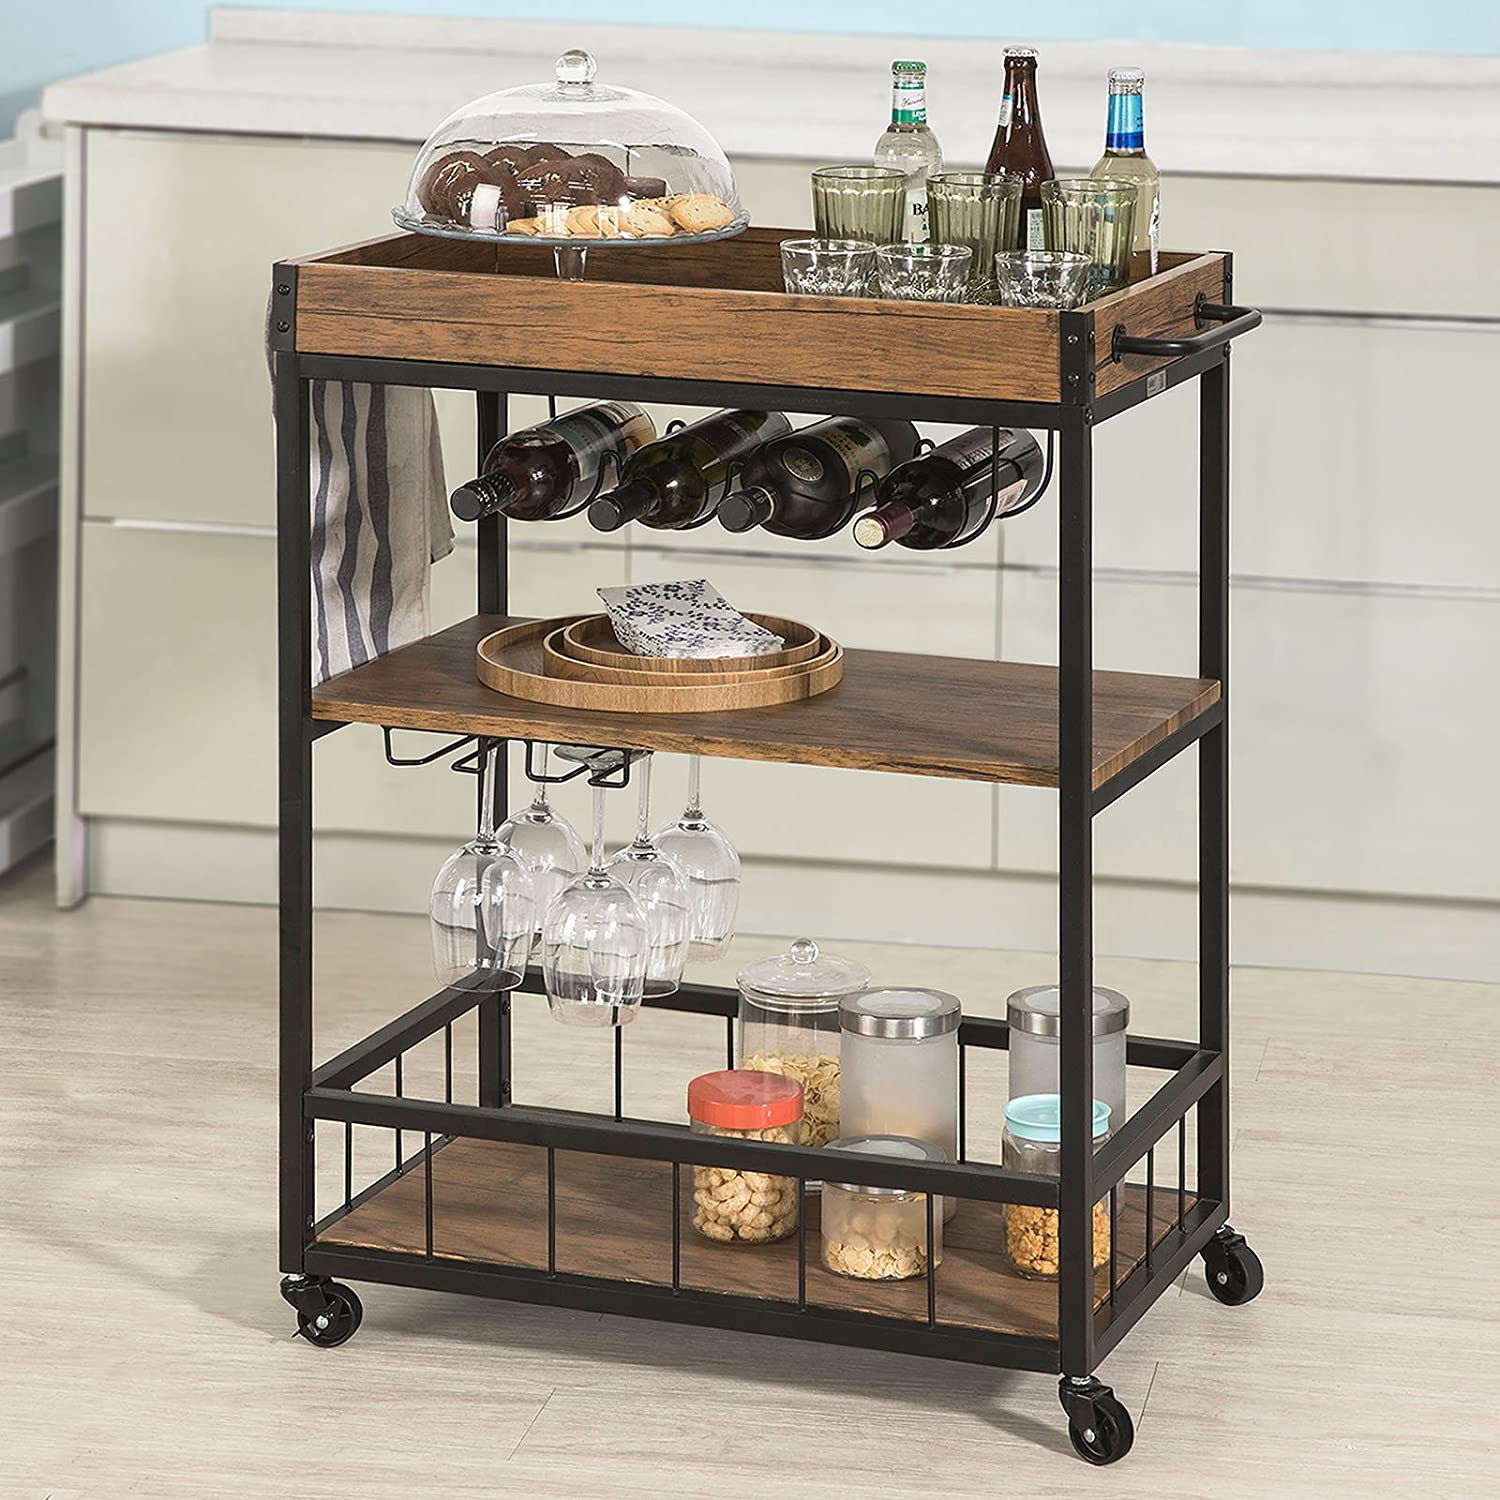 Haotian Bar Serving Cart Home Myra Rustic Mobile Kitchen Serving cart,Industrial Vintage Style Wood Metal Serving Trolley FKW56-N